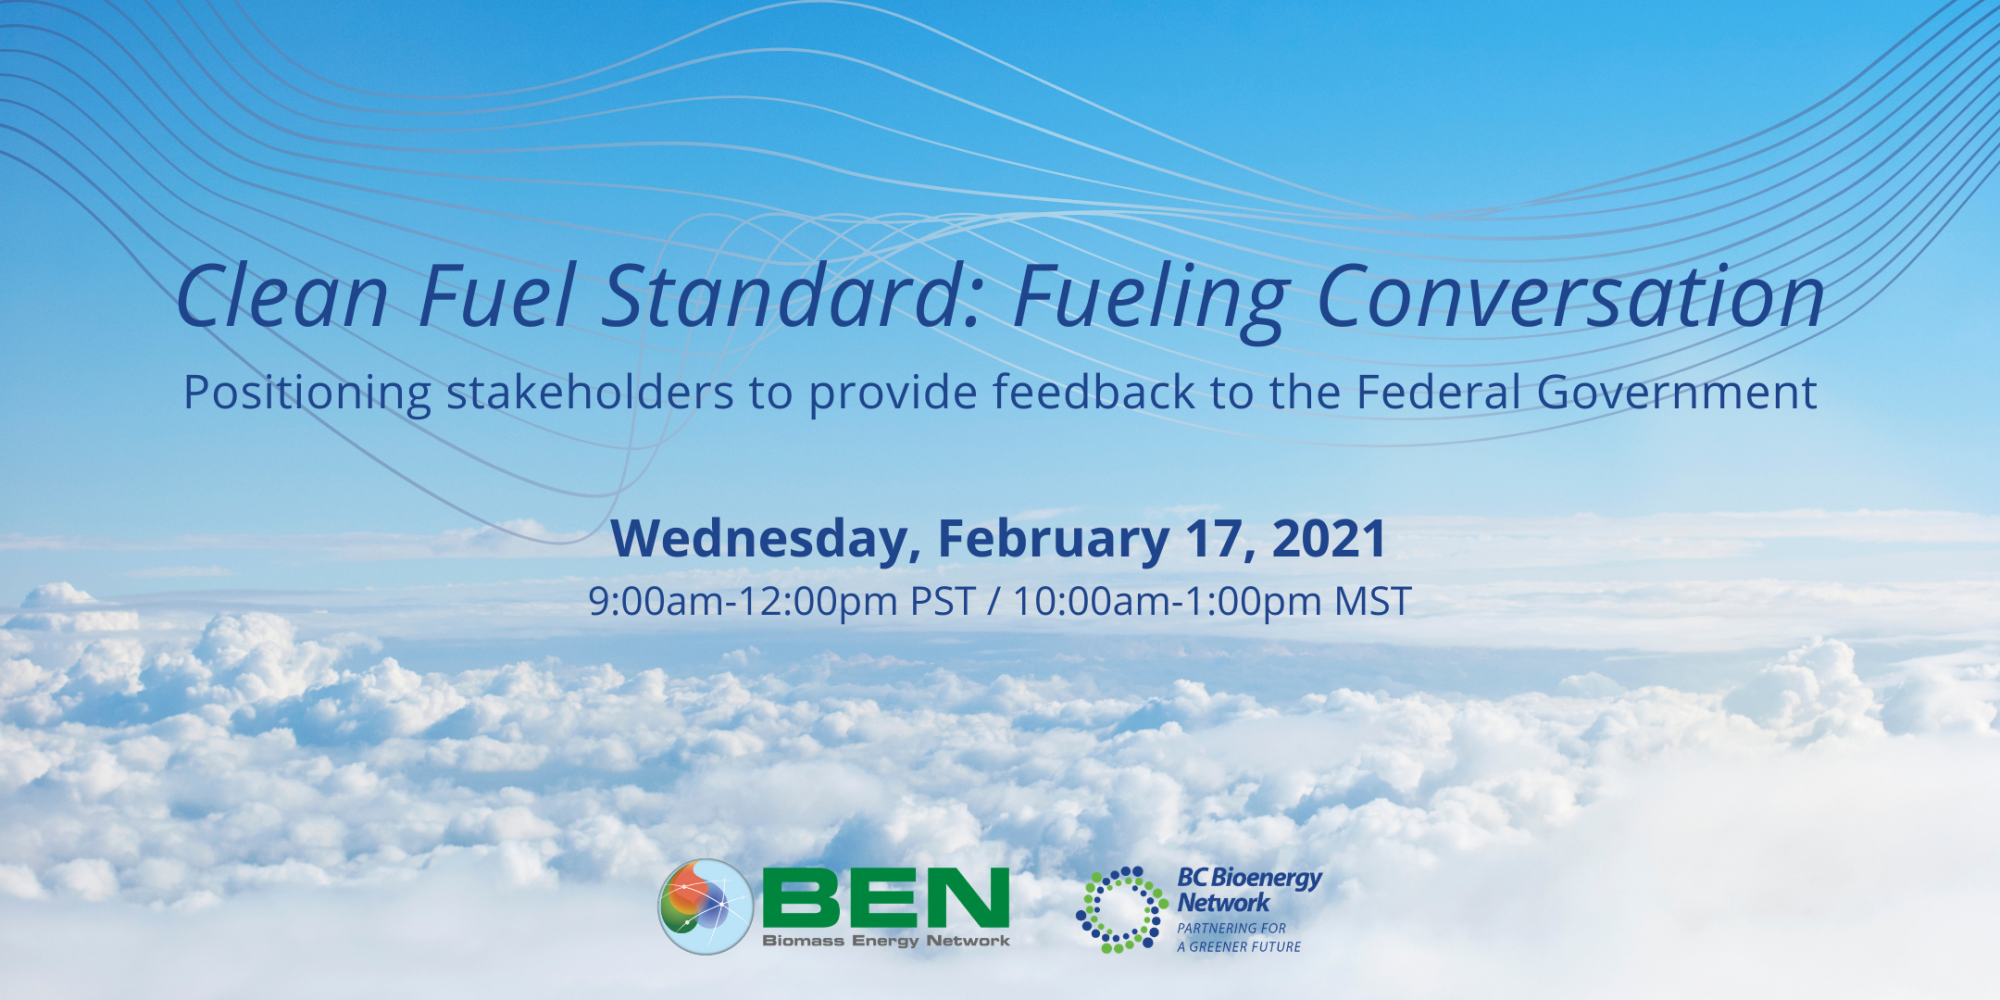 Clean Fuel Standard: Fueling Conversation – February 17, 2021